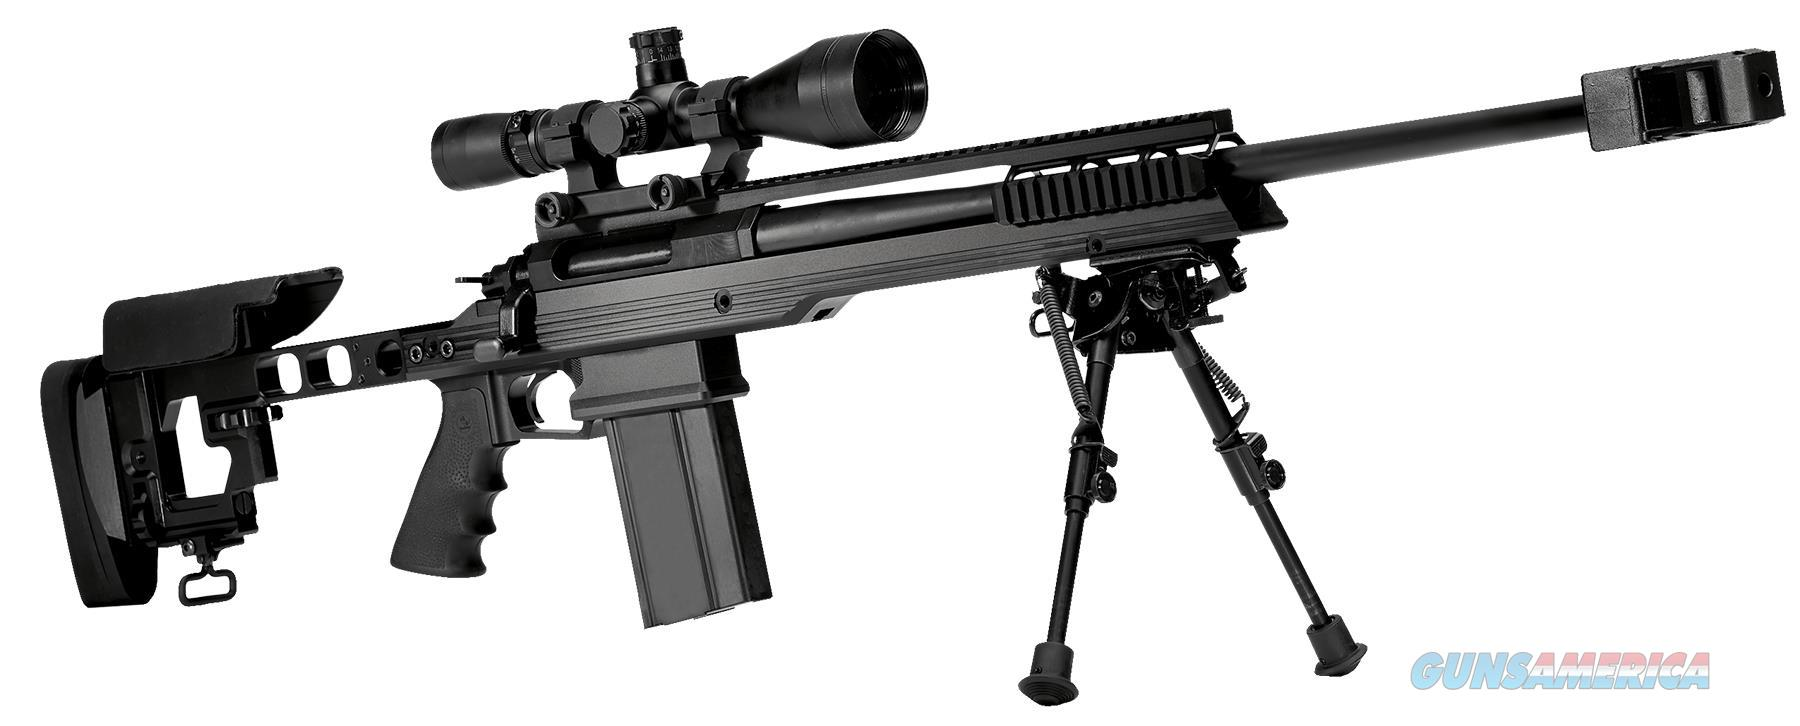 "Armalite 31Bt308 Ar-31 Target Rifle Bolt 308 Winchester/7.62 Nato 24"" 10+1 Adjustable Blk Stk Blk Hard Coat Anodized/Phosphate 31BT308  Guns > Rifles > A Misc Rifles"